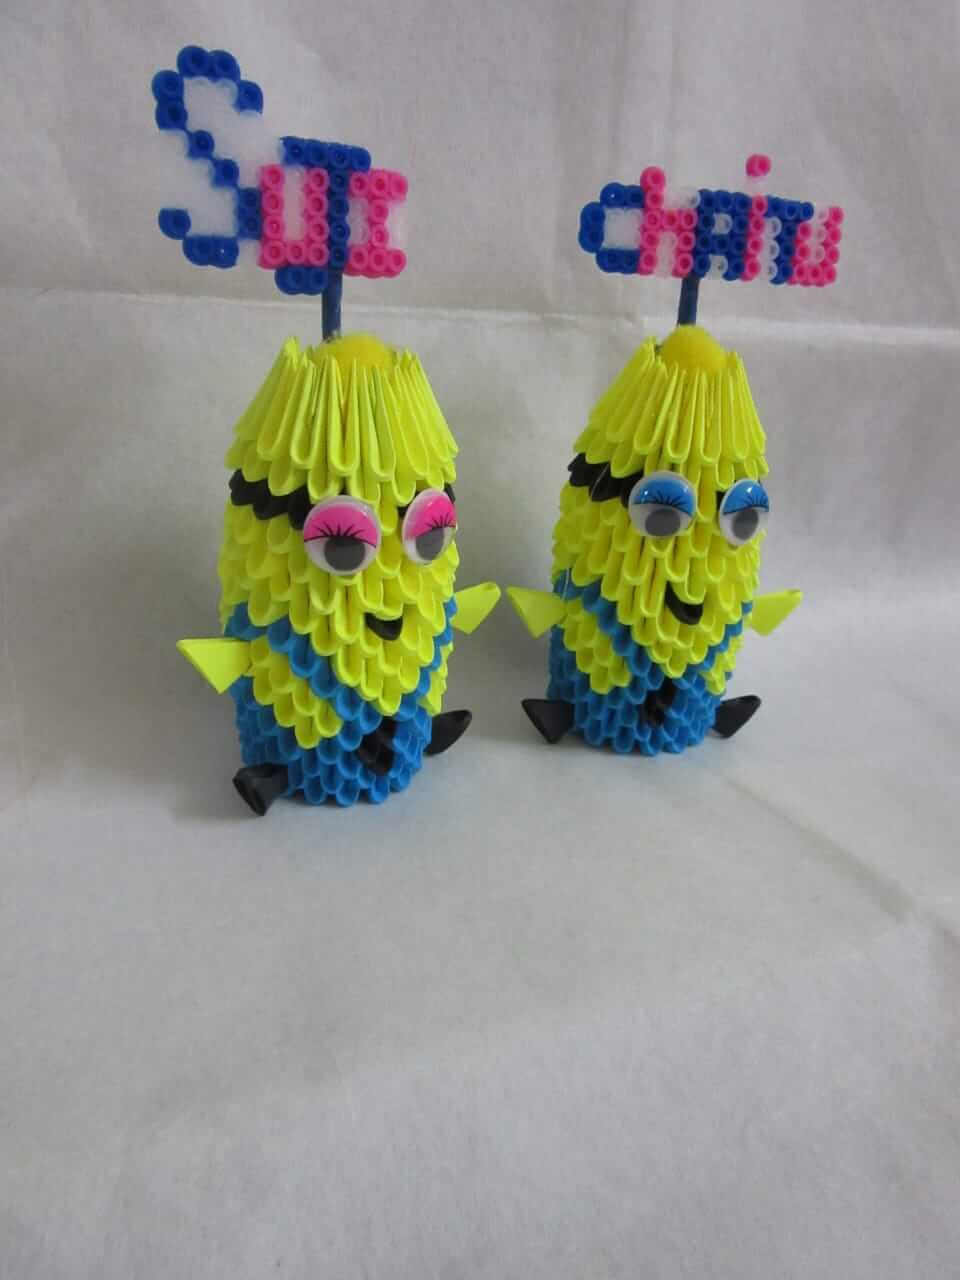 3D ORIGAMI AND BEADS MINION PAIR